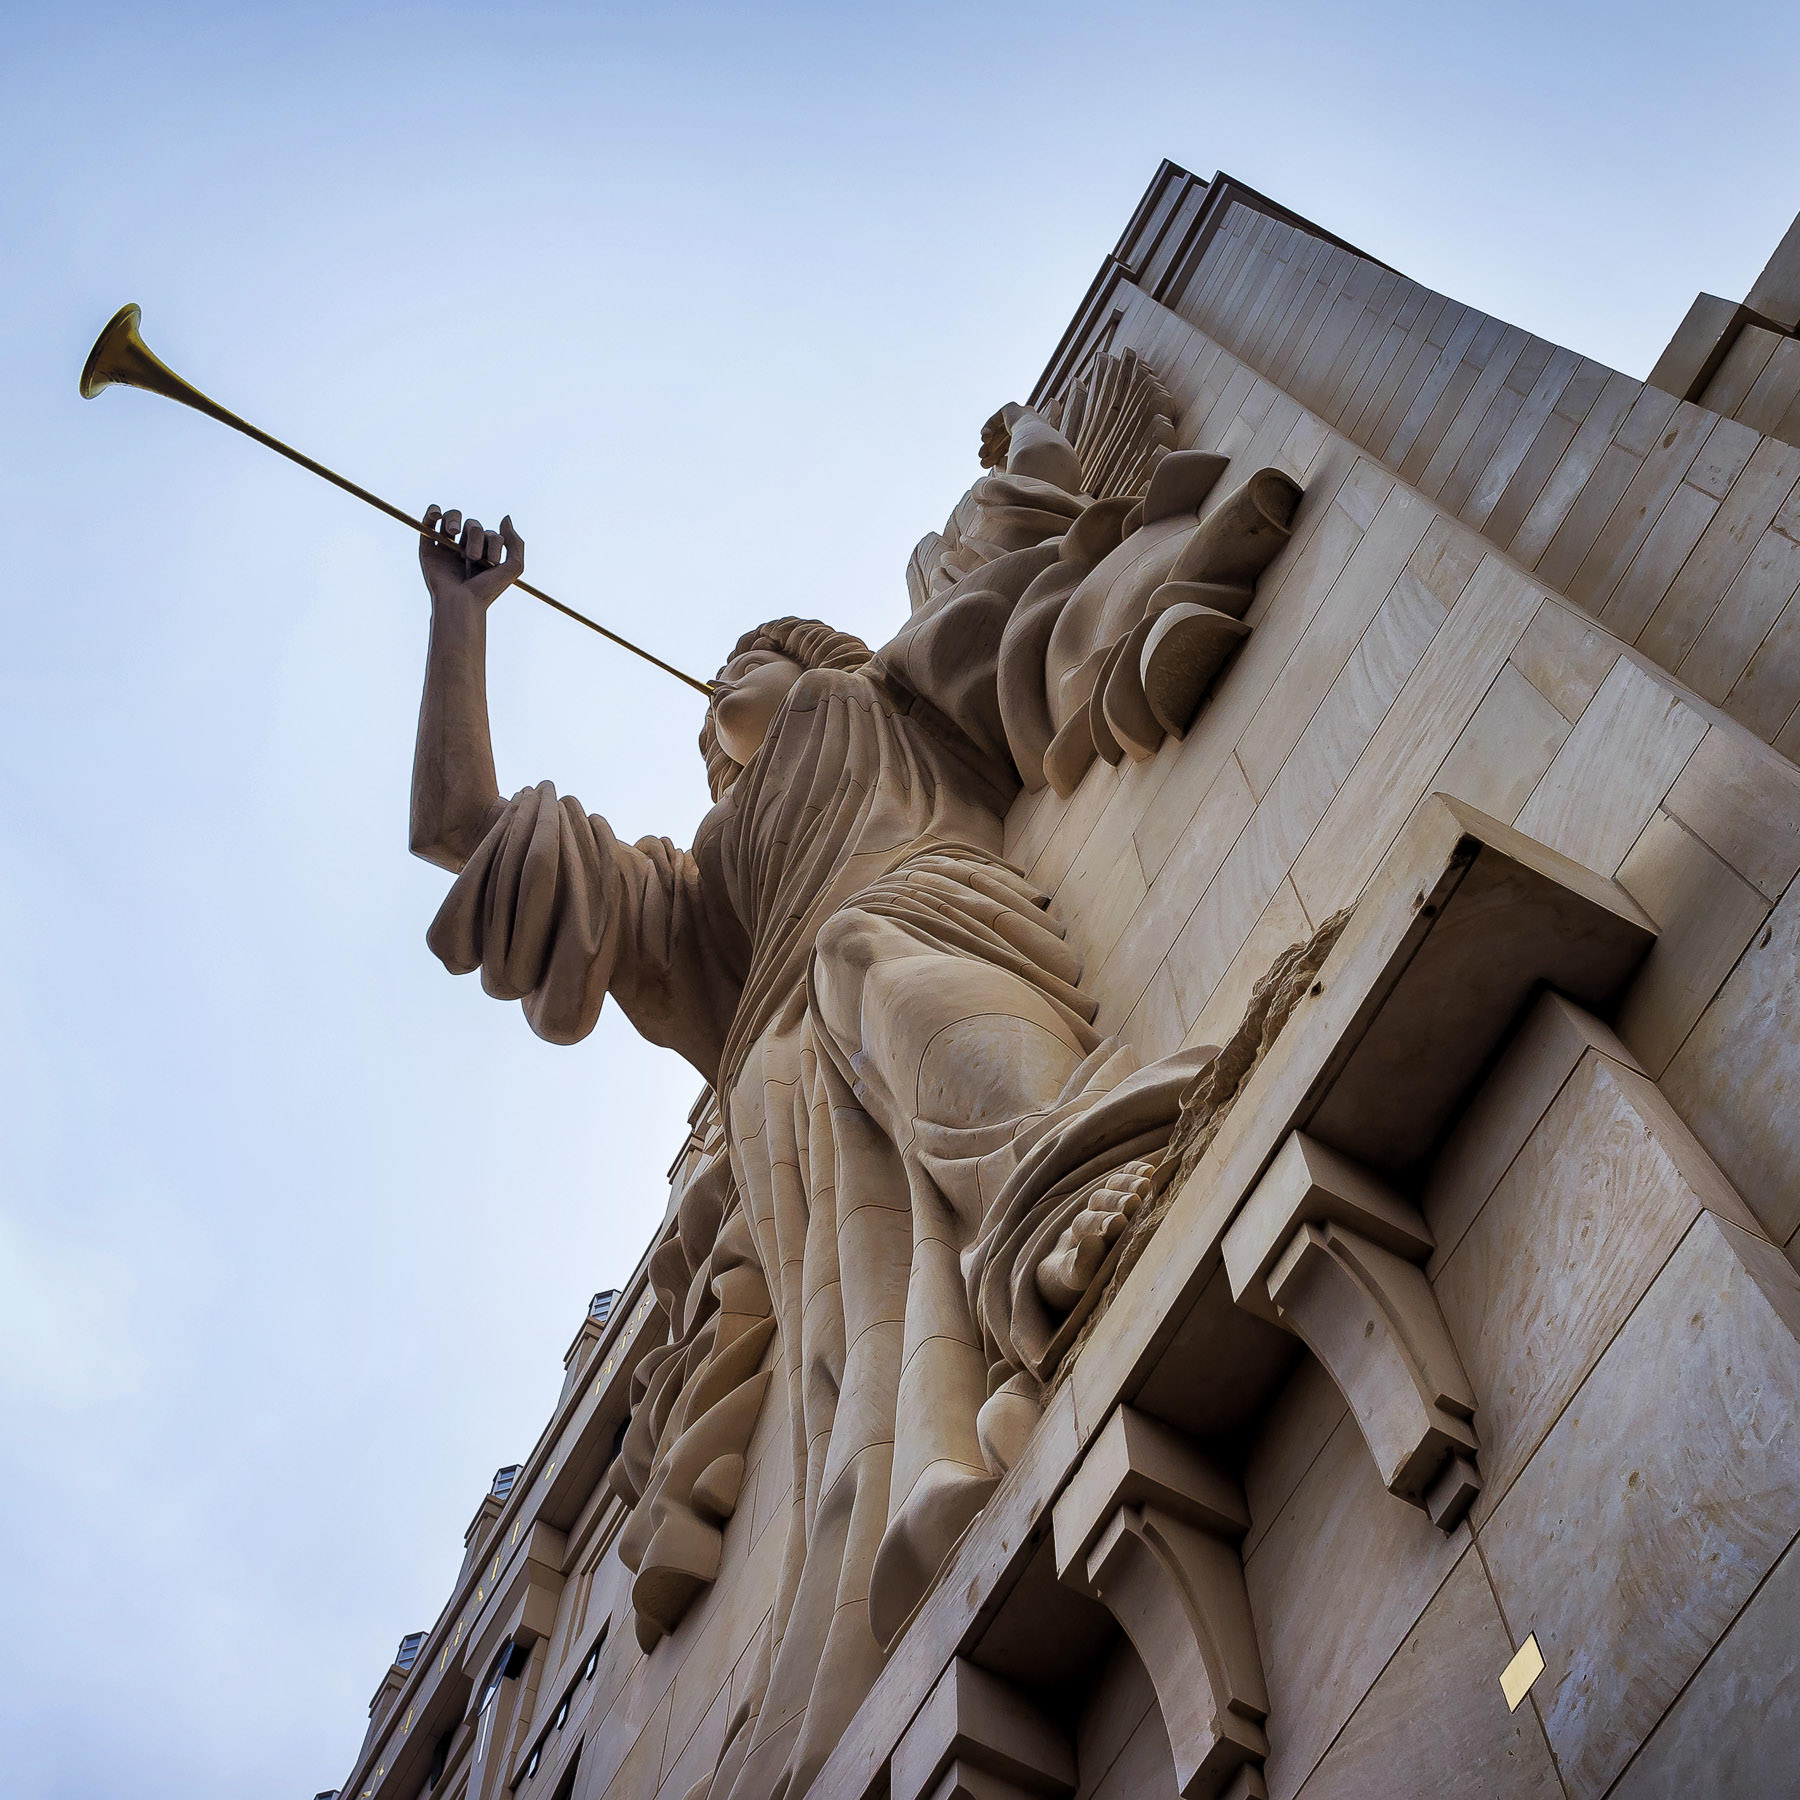 One of two 48-foot-tall trumpet-playing angels on the façade of Fort Worth's Bass Performance Hall.